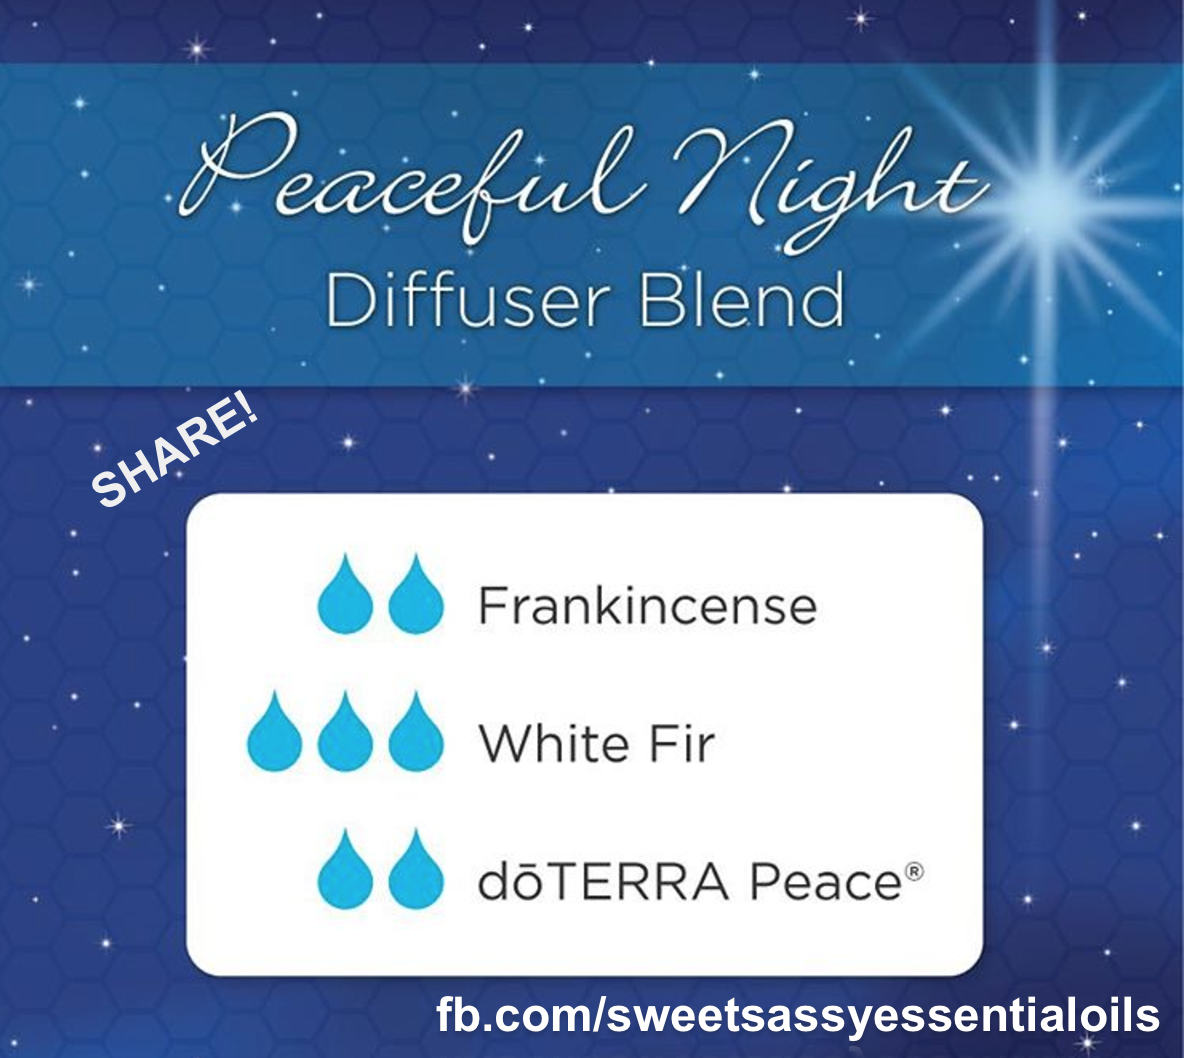 spa-peace-winter-night-diffuser-blend